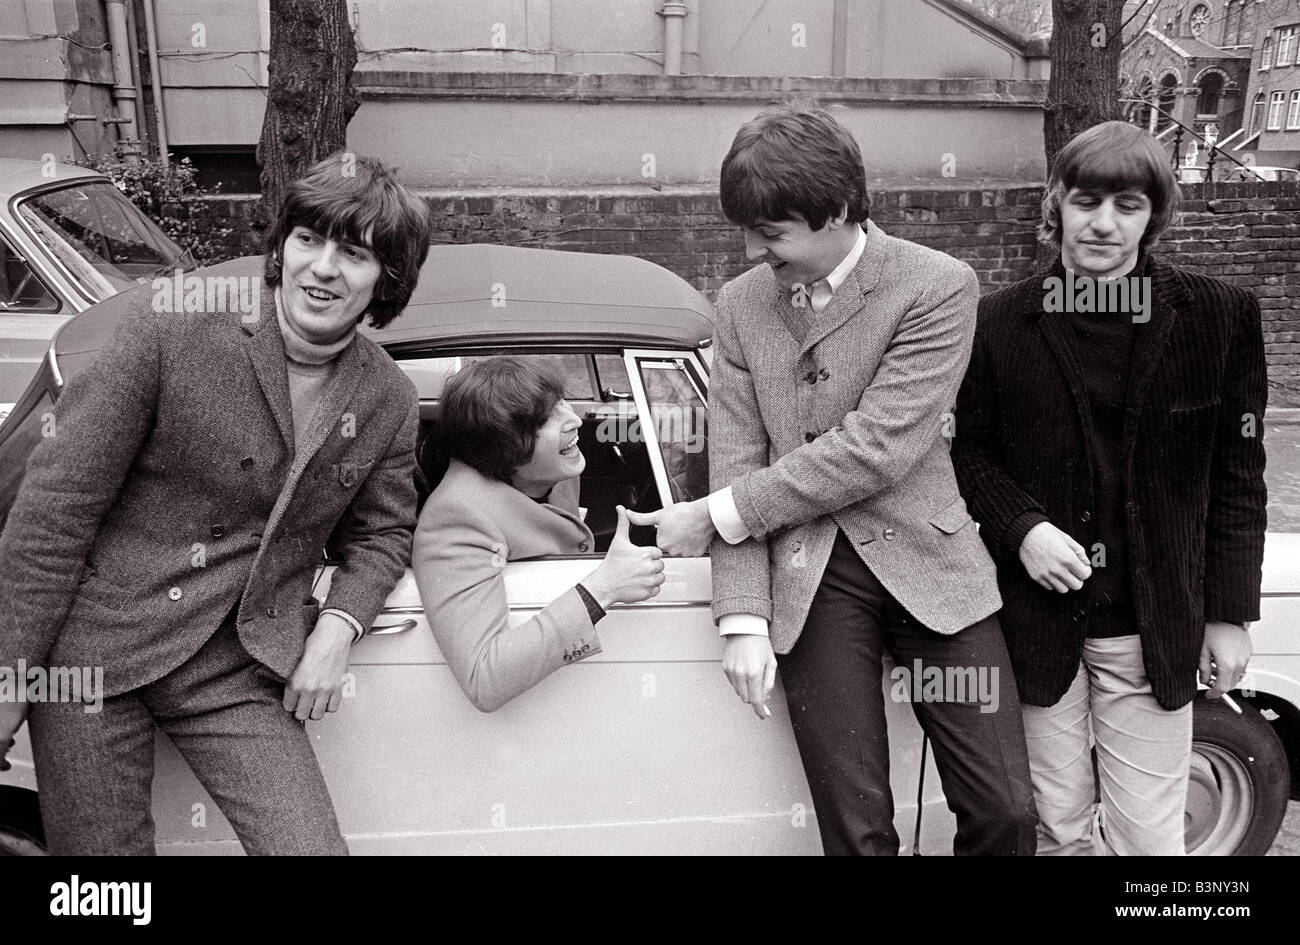 The Beatles by John Lennon s car after he passed his L test 15th February 1965 L R George Harrison John Lennon in - Stock Image